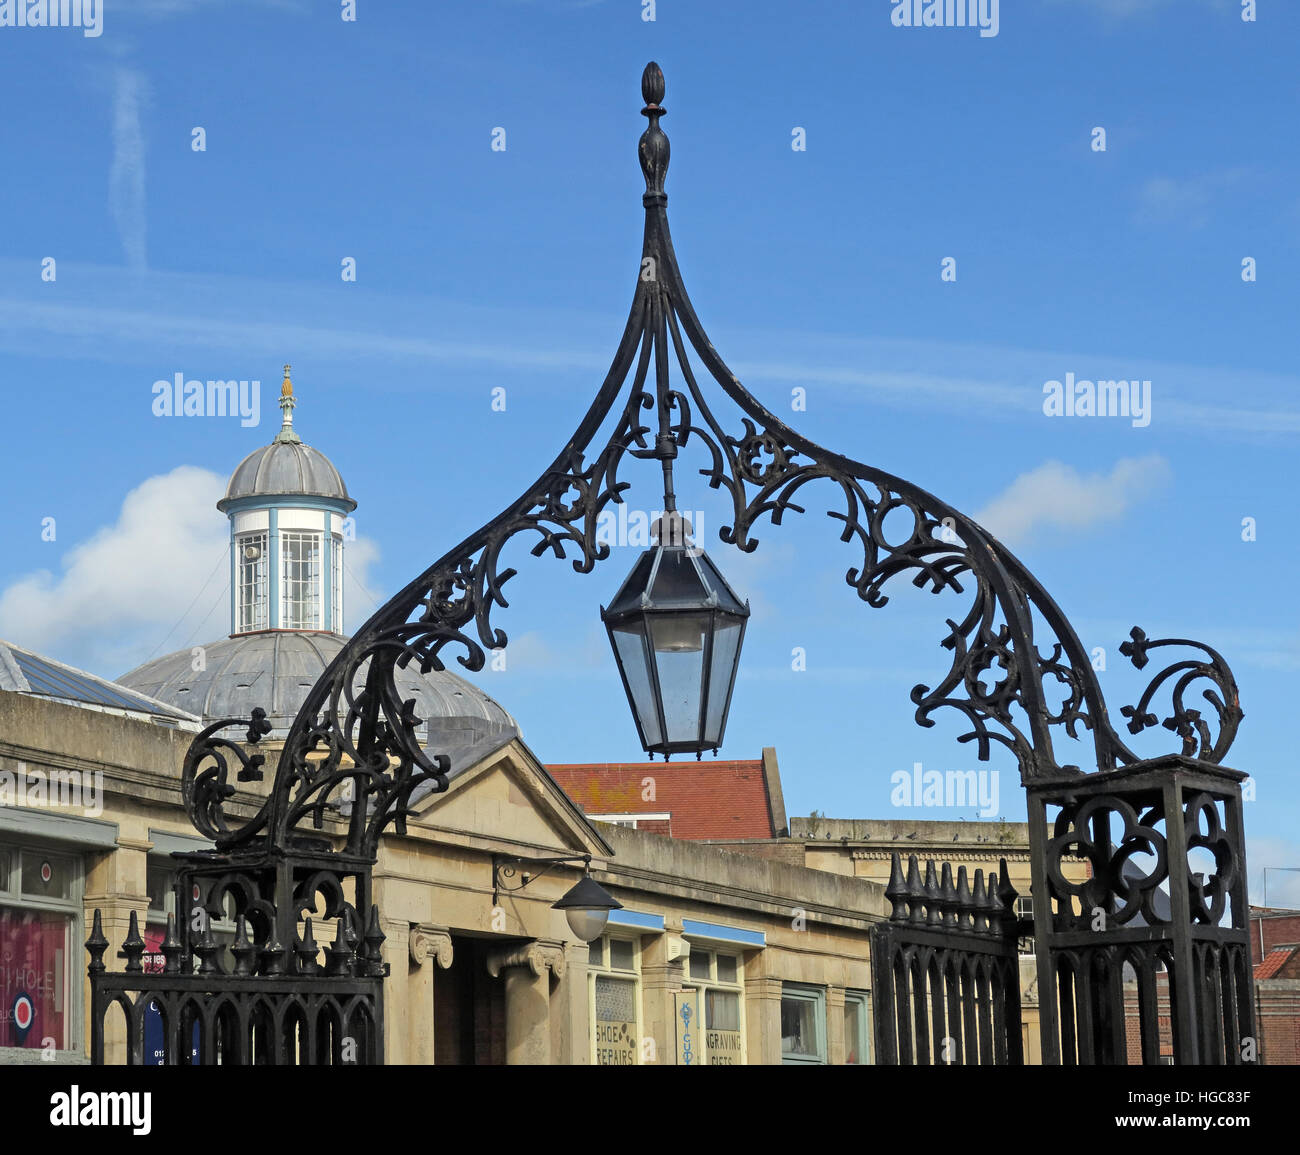 history,wrought,iron,light,ornate,SDC,Sedgemoor,District,Council,church,christian,church,of,Engalnd,St,mary,Marys,Church,Somerset,wrought